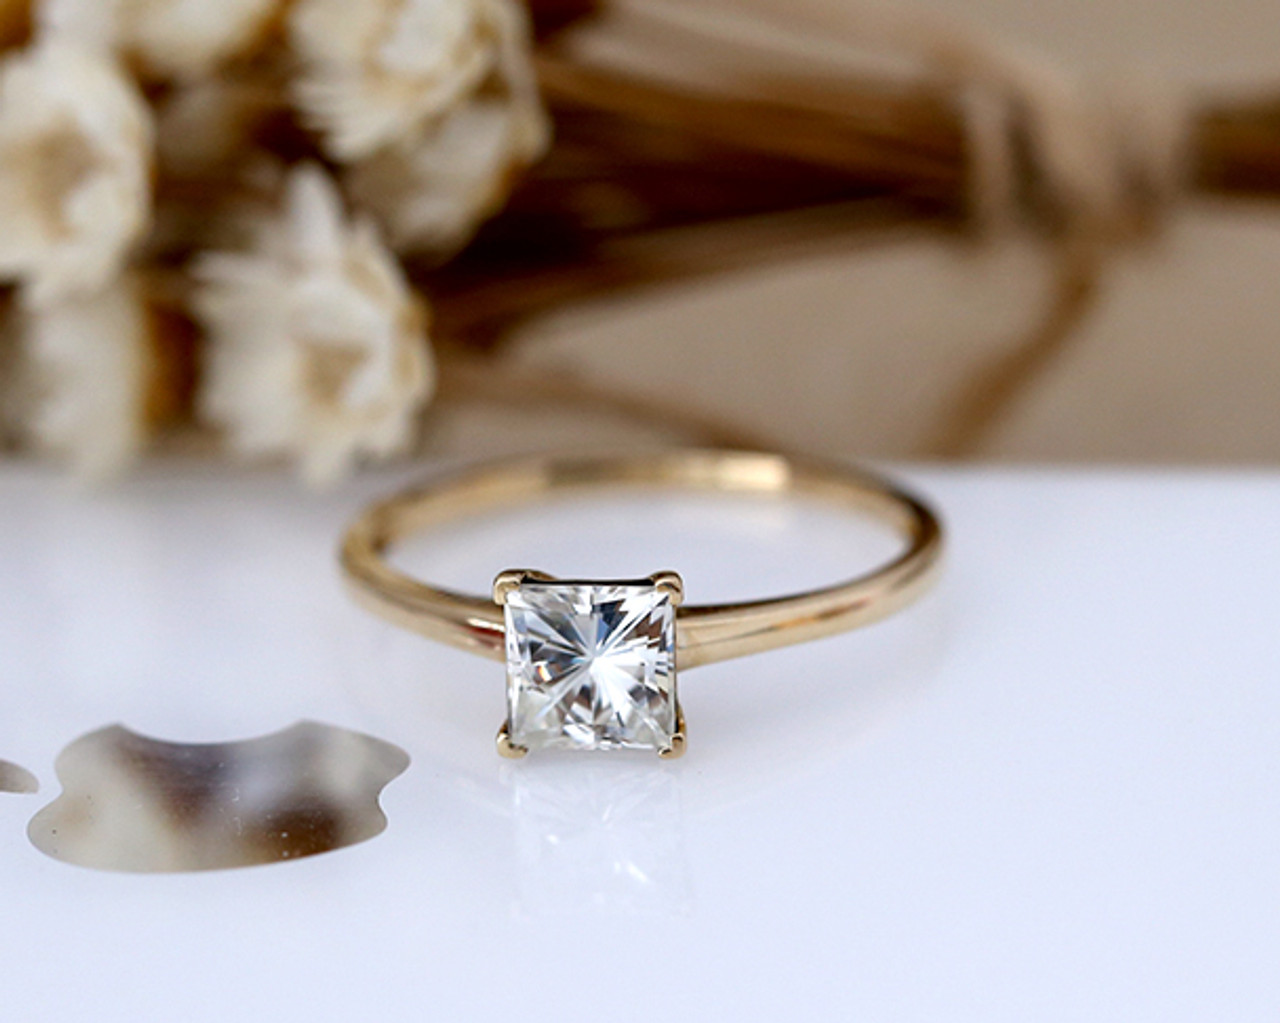 1ct Princess Cut Brilliant Moissanite Ring Solid 14K Yellow gold Wedding  Ring Moissanite Engagement Ring